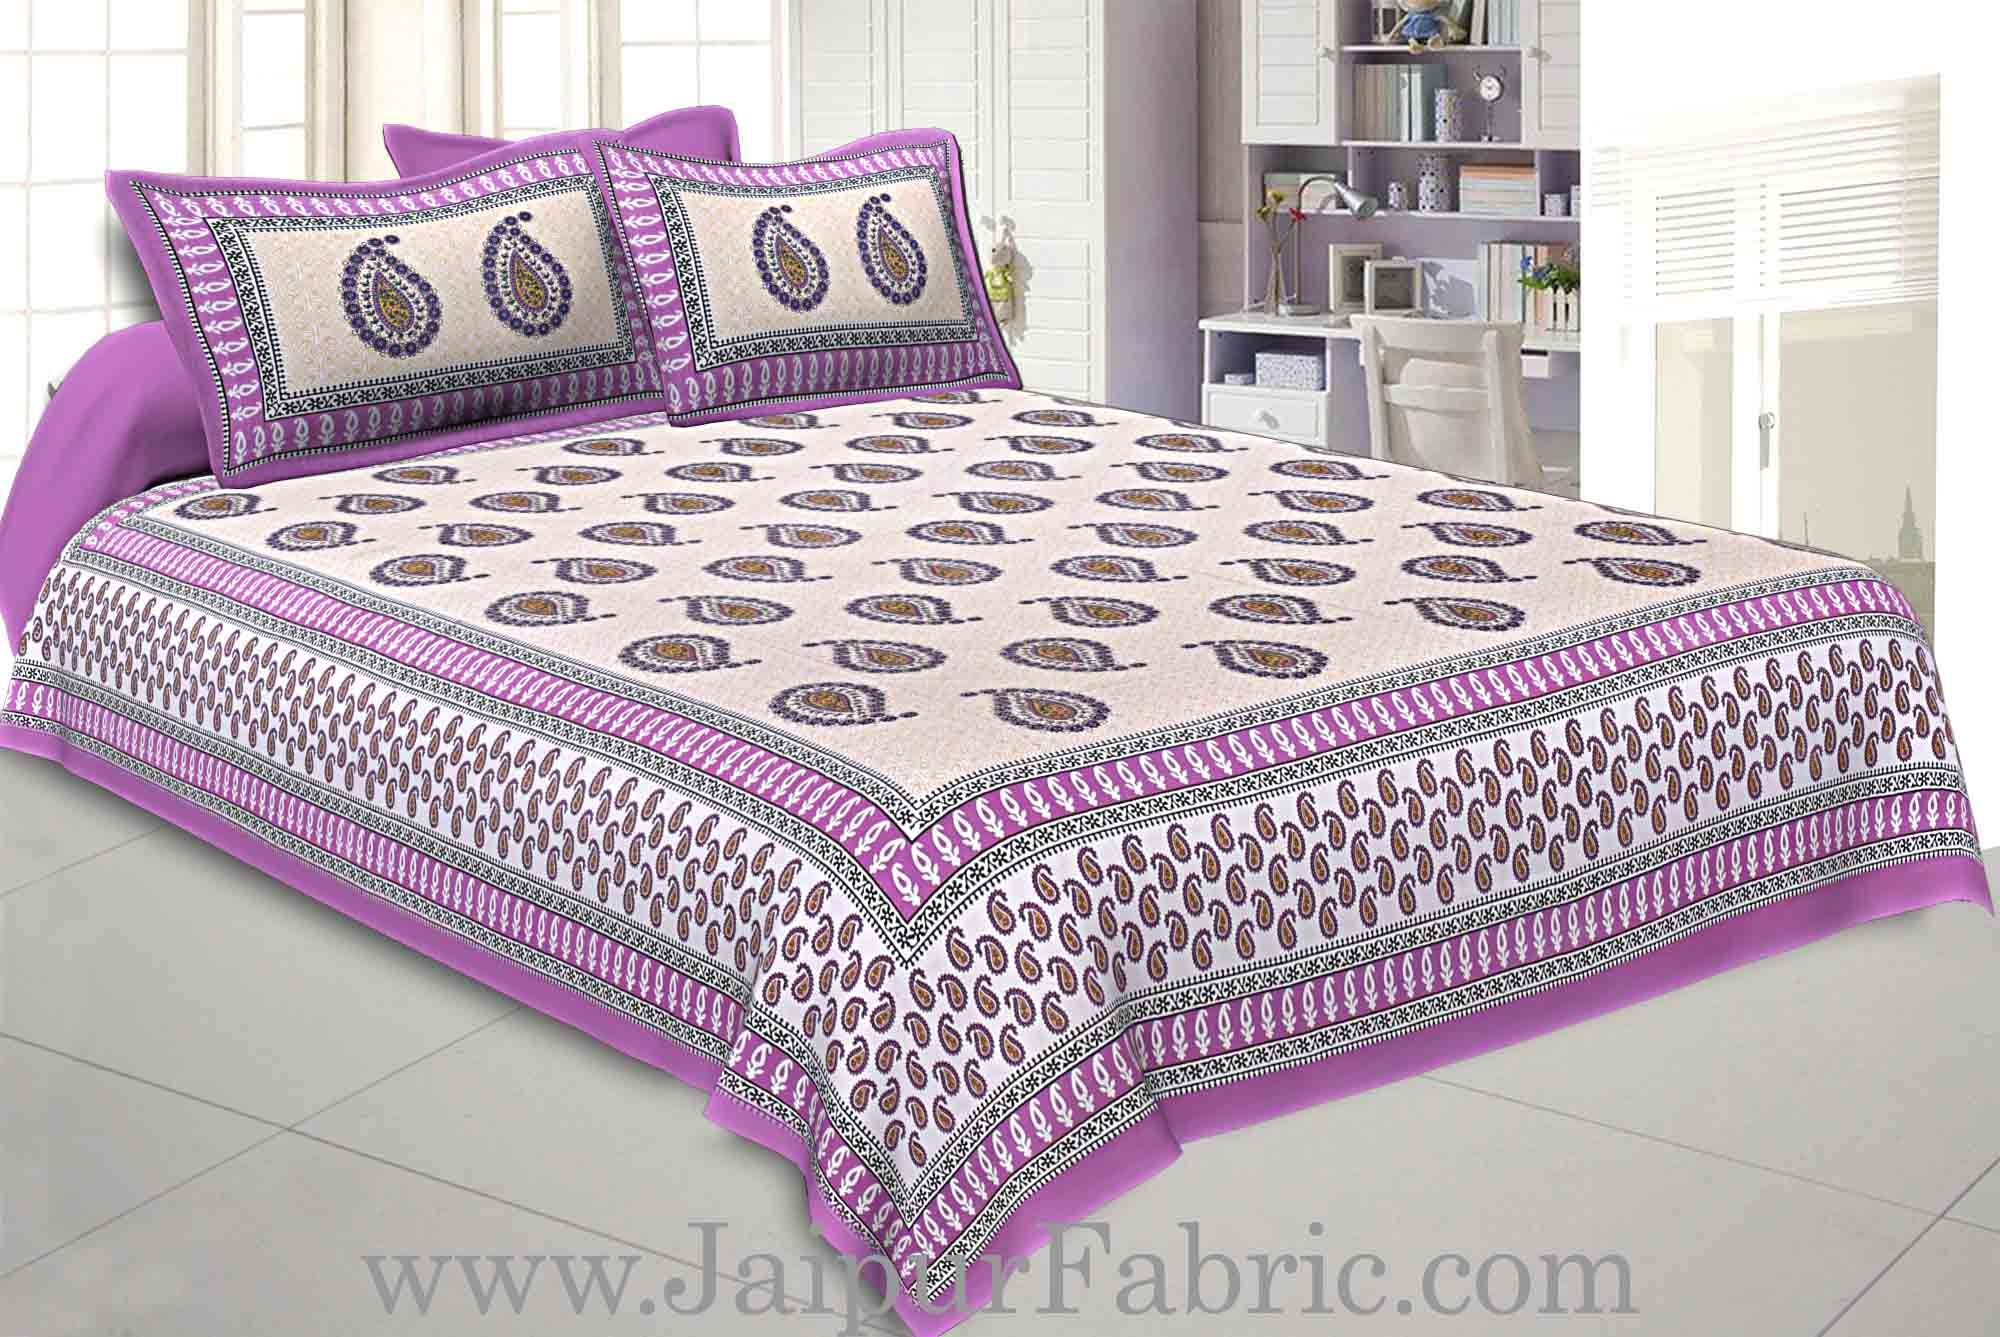 Double bedsheet Purple Border With Paisley Print Fine Cotton With Two Pillow Cover